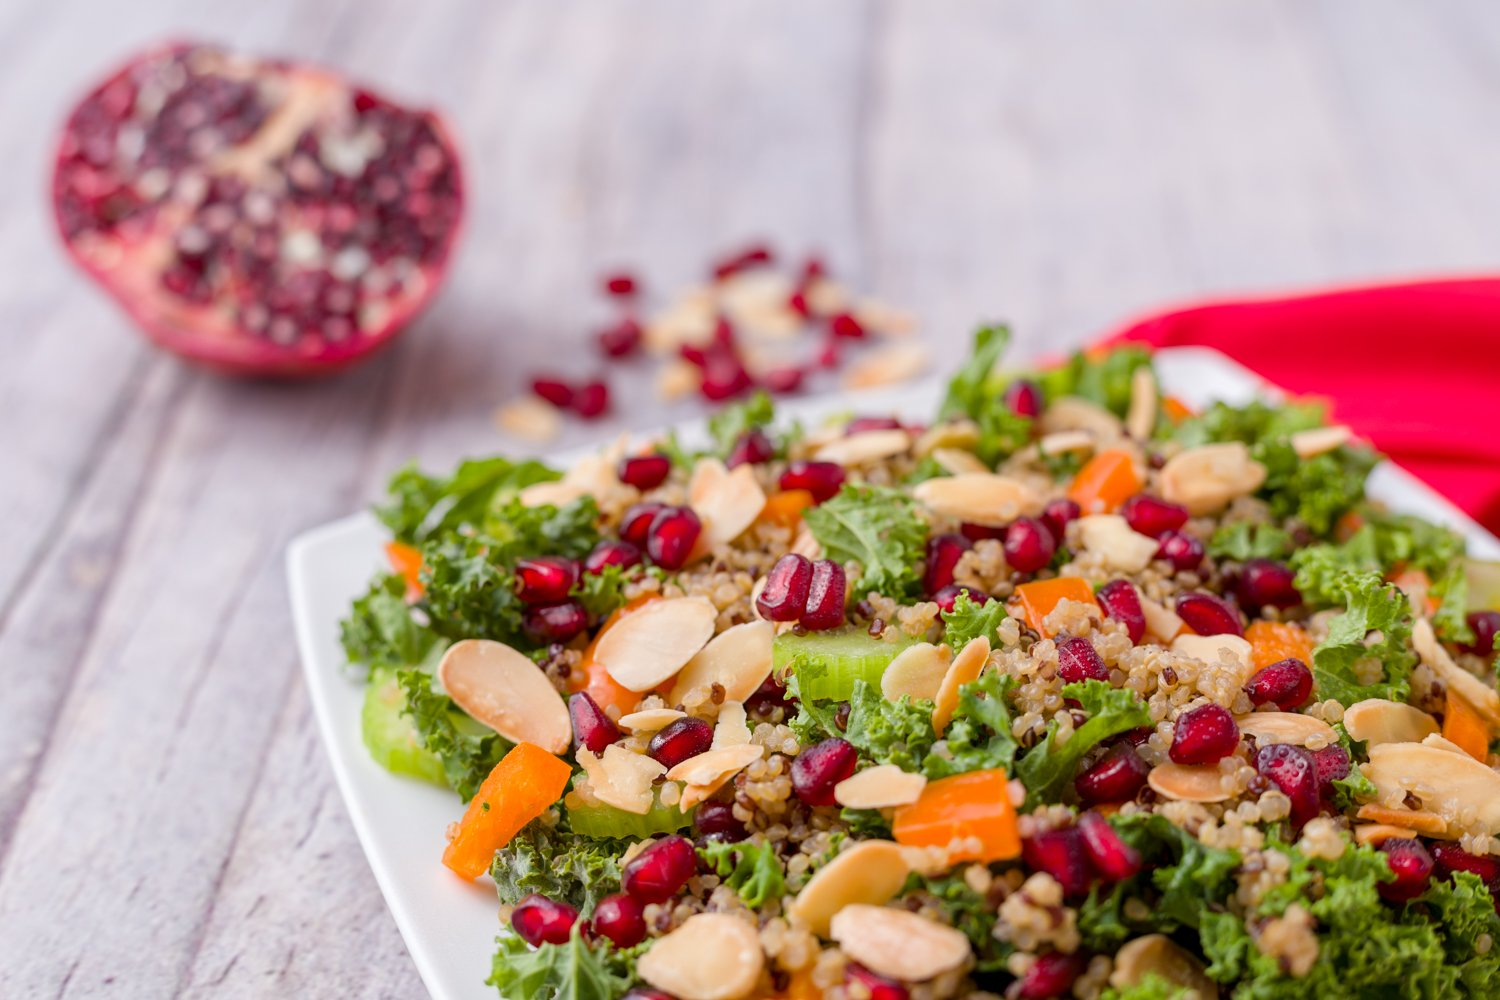 Don't sacrifice taste for healthy eating. Check out this Kale Quinoa Pomegranate Salad recipe that even the kids will love. #healthyeating #kale